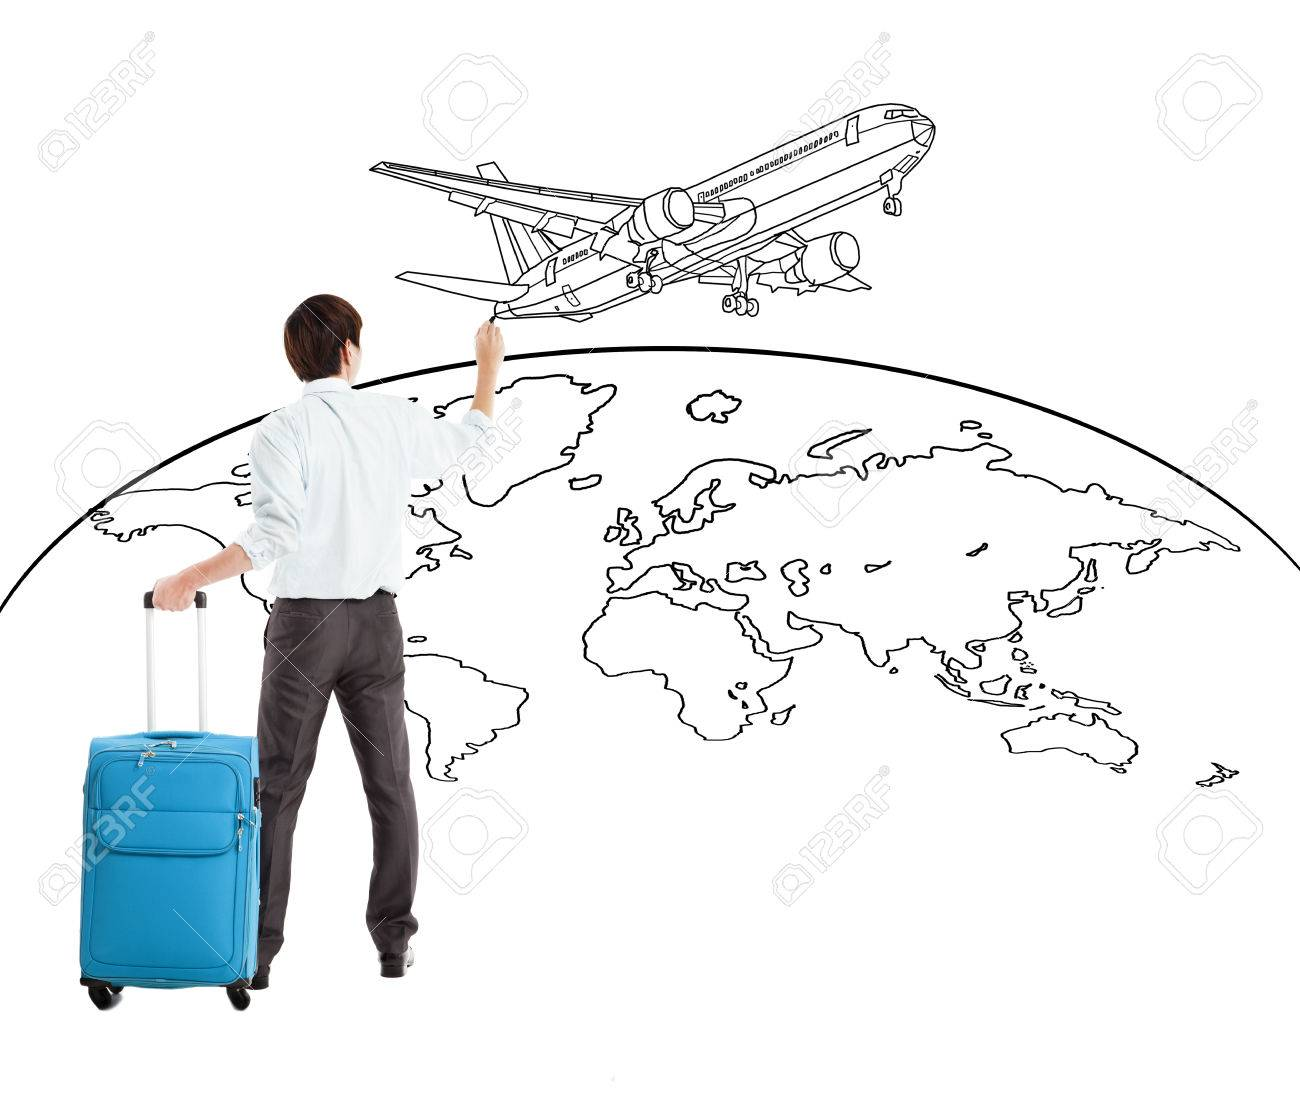 young businessman drawing airplane and world map Stock Photo - 28601625